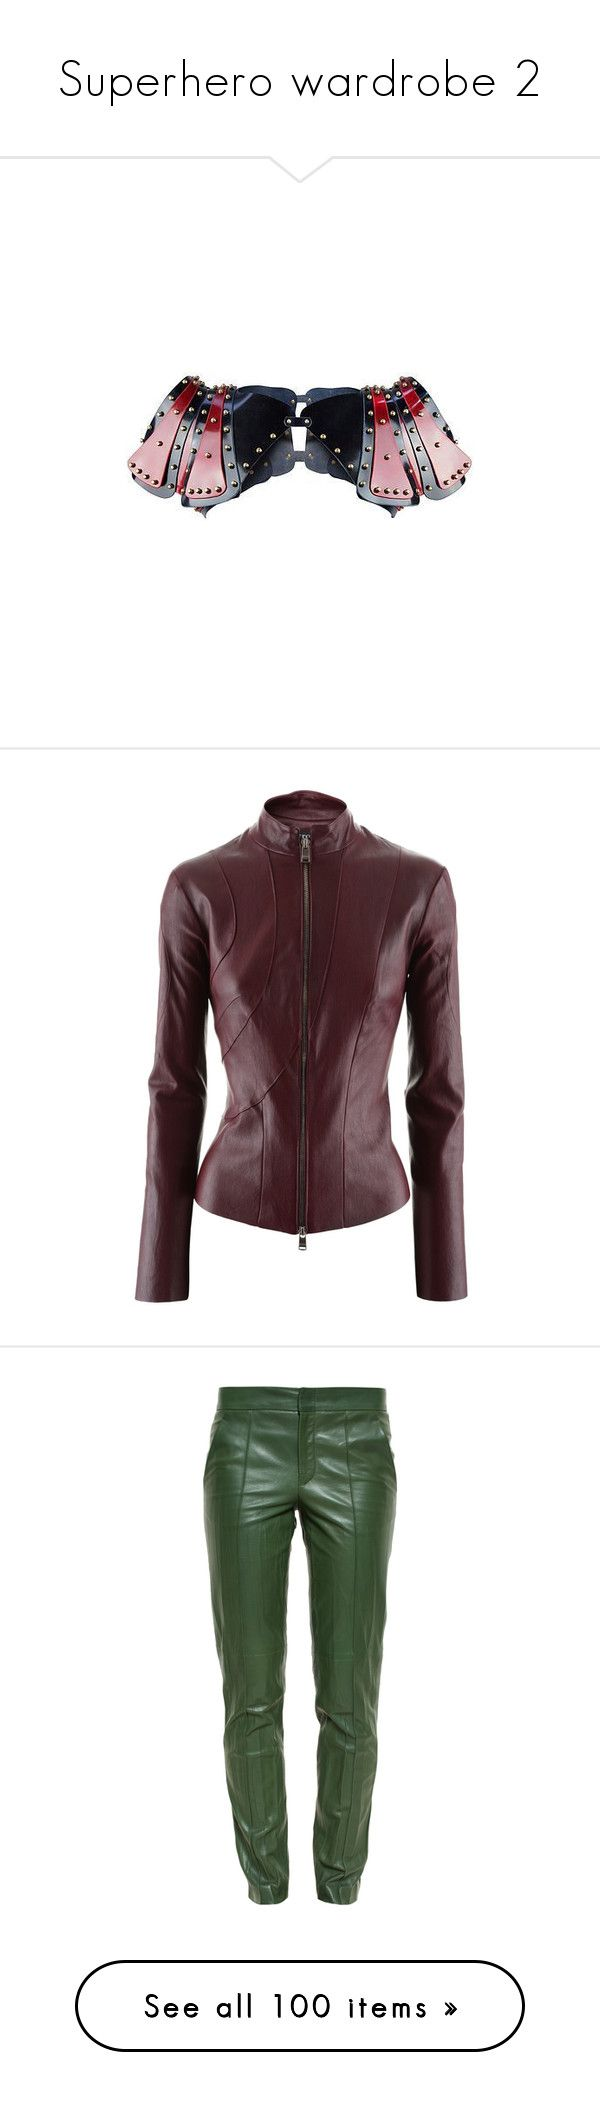 """""""Superhero wardrobe 2"""" by rebellious-ingenue ❤ liked on Polyvore featuring outerwear, jackets, coats, jitrois, brown leather jacket, brown jacket, real leather jackets, leather jackets, pants and trousers"""